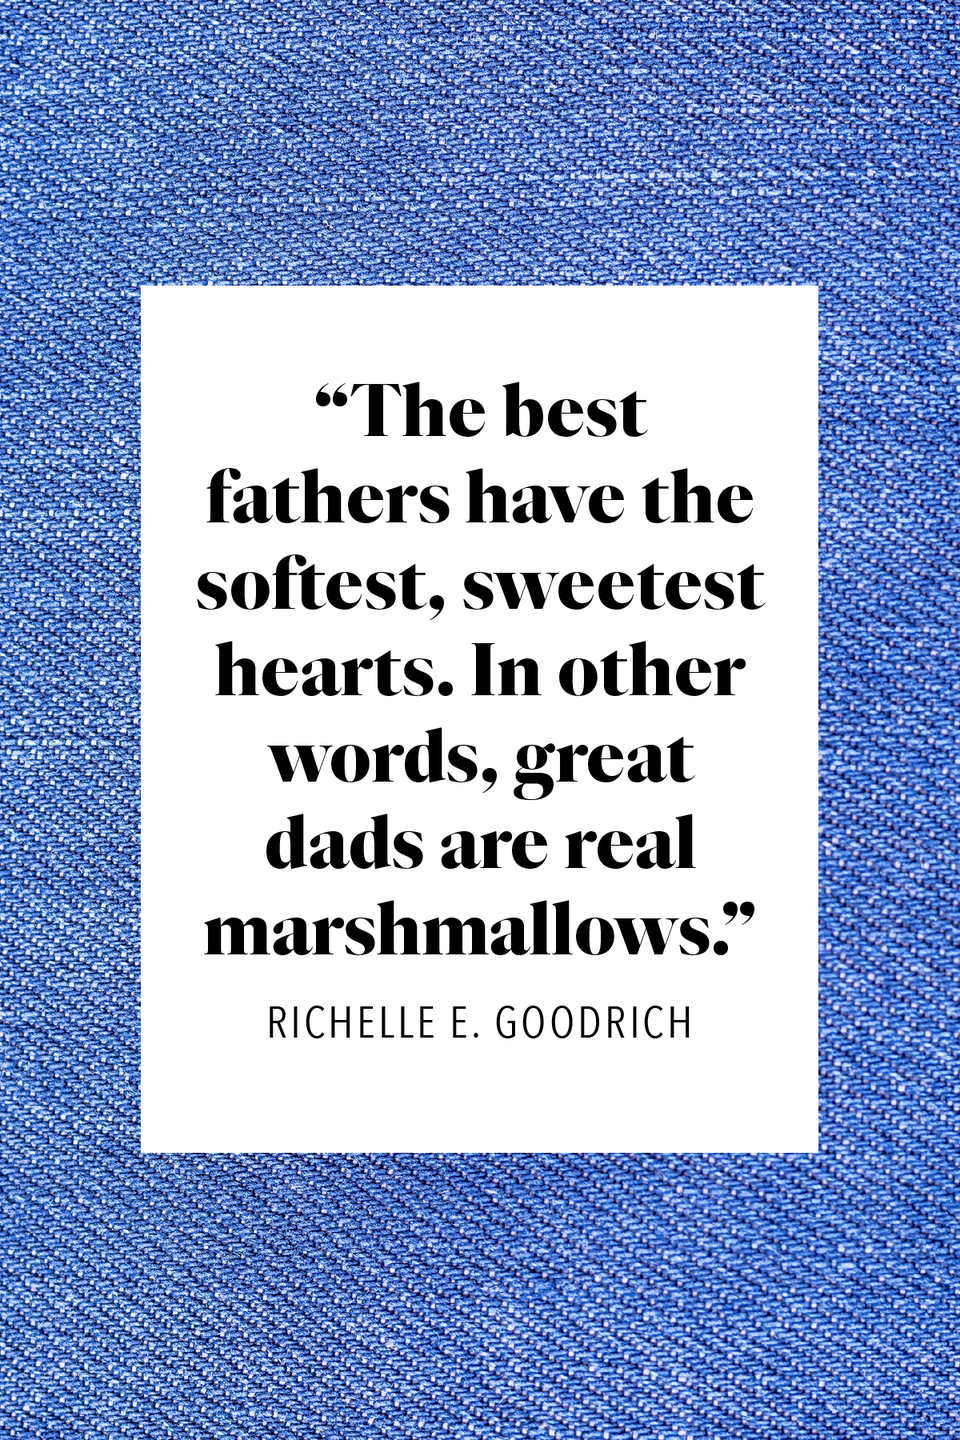 """<p>""""The best fathers have the softest, sweetest hearts,"""" the American novelist and poet wrote in her book <a href=""""https://www.amazon.com/Slaying-Dragons-Quotes-Poetry-Stories/dp/1545410712?tag=syn-yahoo-20&ascsubtag=%5Bartid%7C2139.g.32925371%5Bsrc%7Cyahoo-us"""" rel=""""nofollow noopener"""" target=""""_blank"""" data-ylk=""""slk:Slaying Dragons"""" class=""""link rapid-noclick-resp""""><em>Slaying Dragons</em></a>. """"In other words, great dads are real marshmallows."""" </p>"""